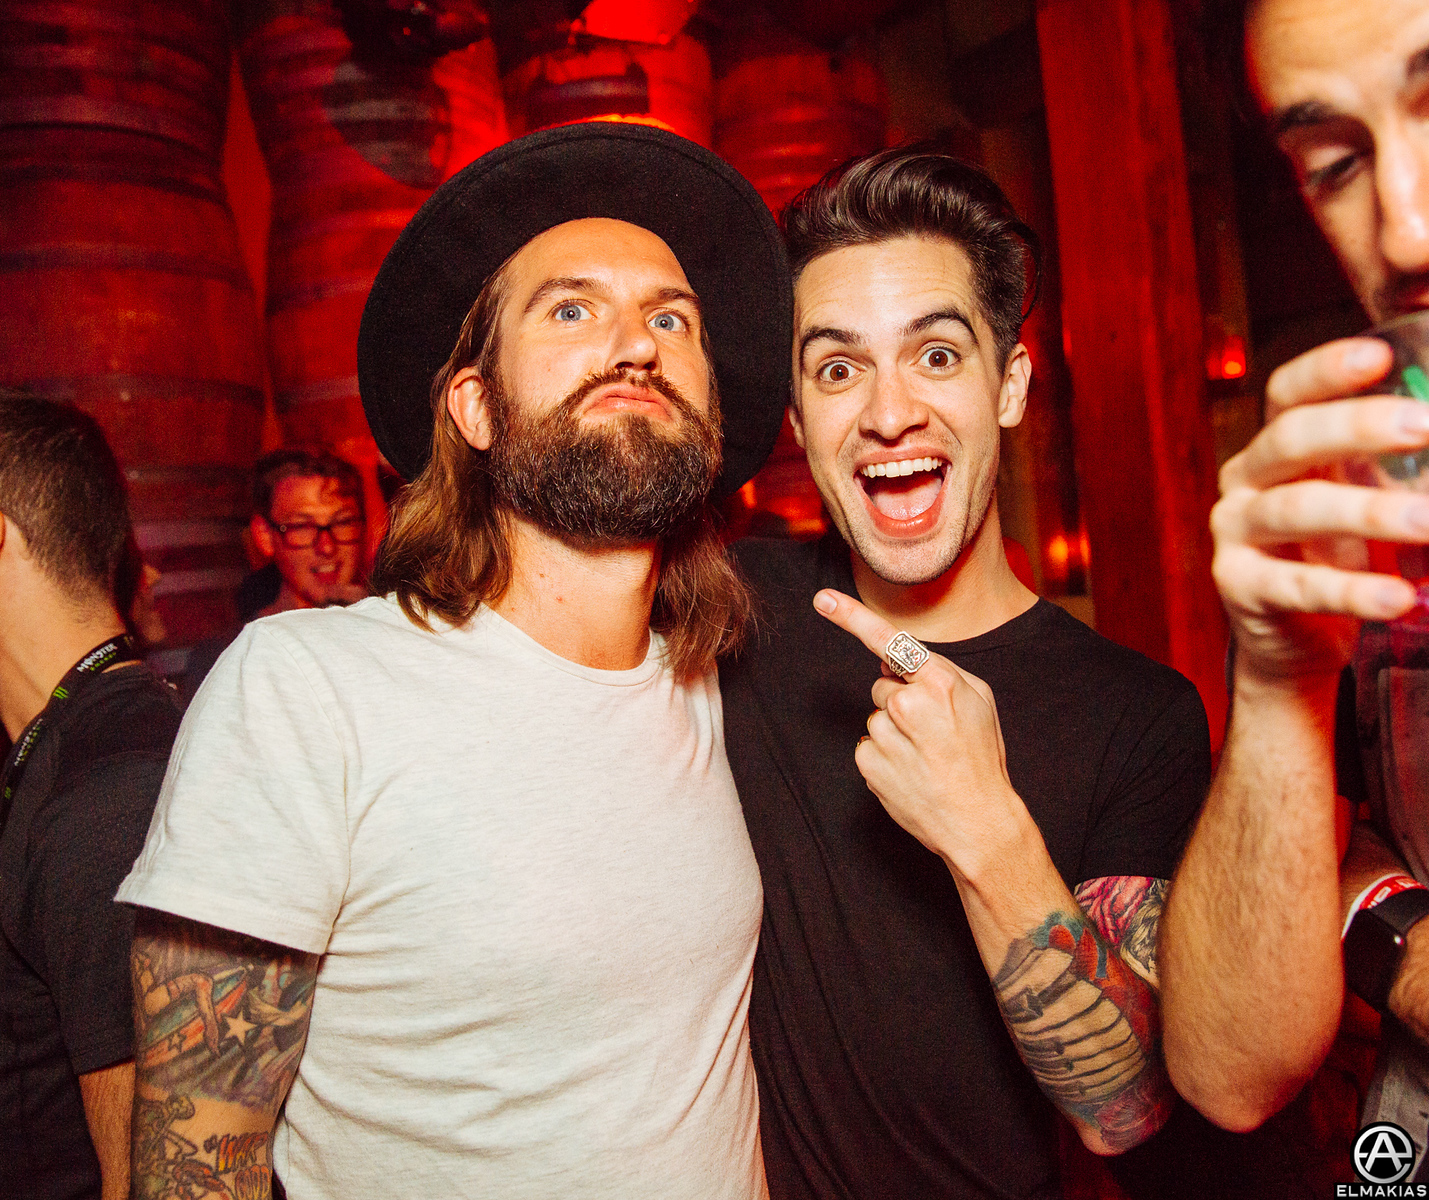 Keith Buckley of Every Time I Die and Brendon Urie of Panic! At The Disco at the APMAs 2015 by Adam Elmakias